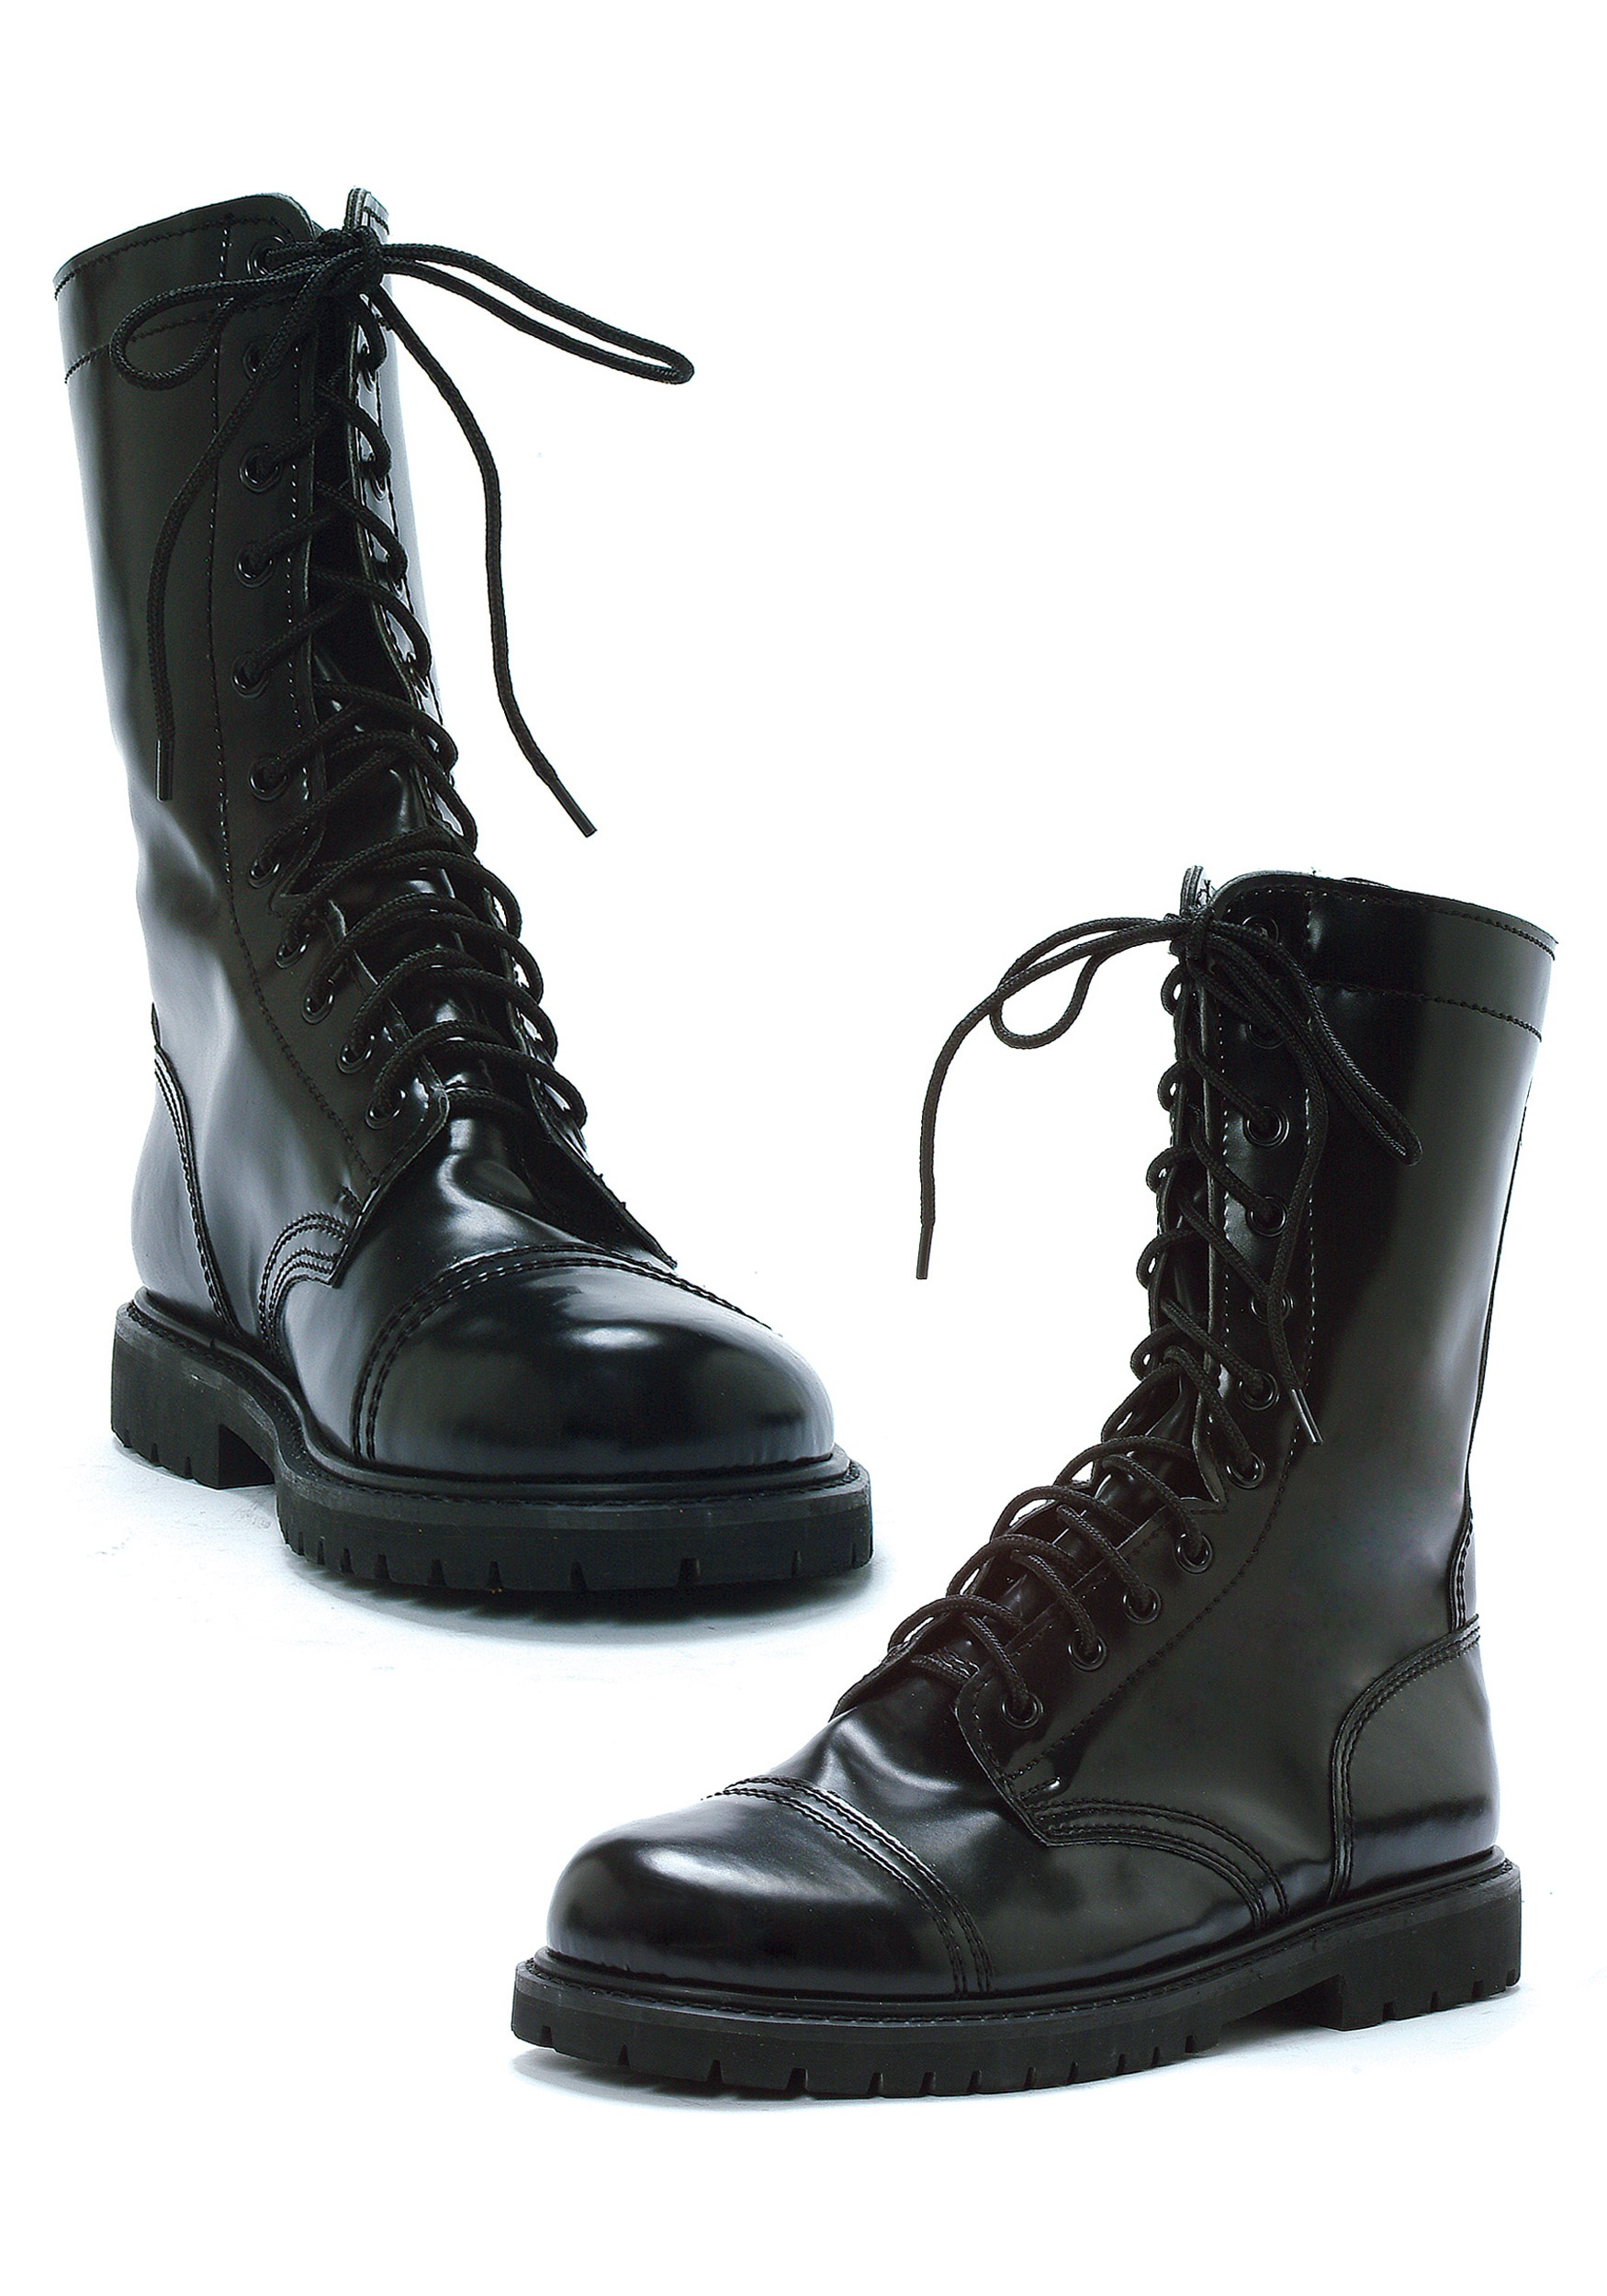 Adult Army Black Combat Boots Mens Military Soldier Boots